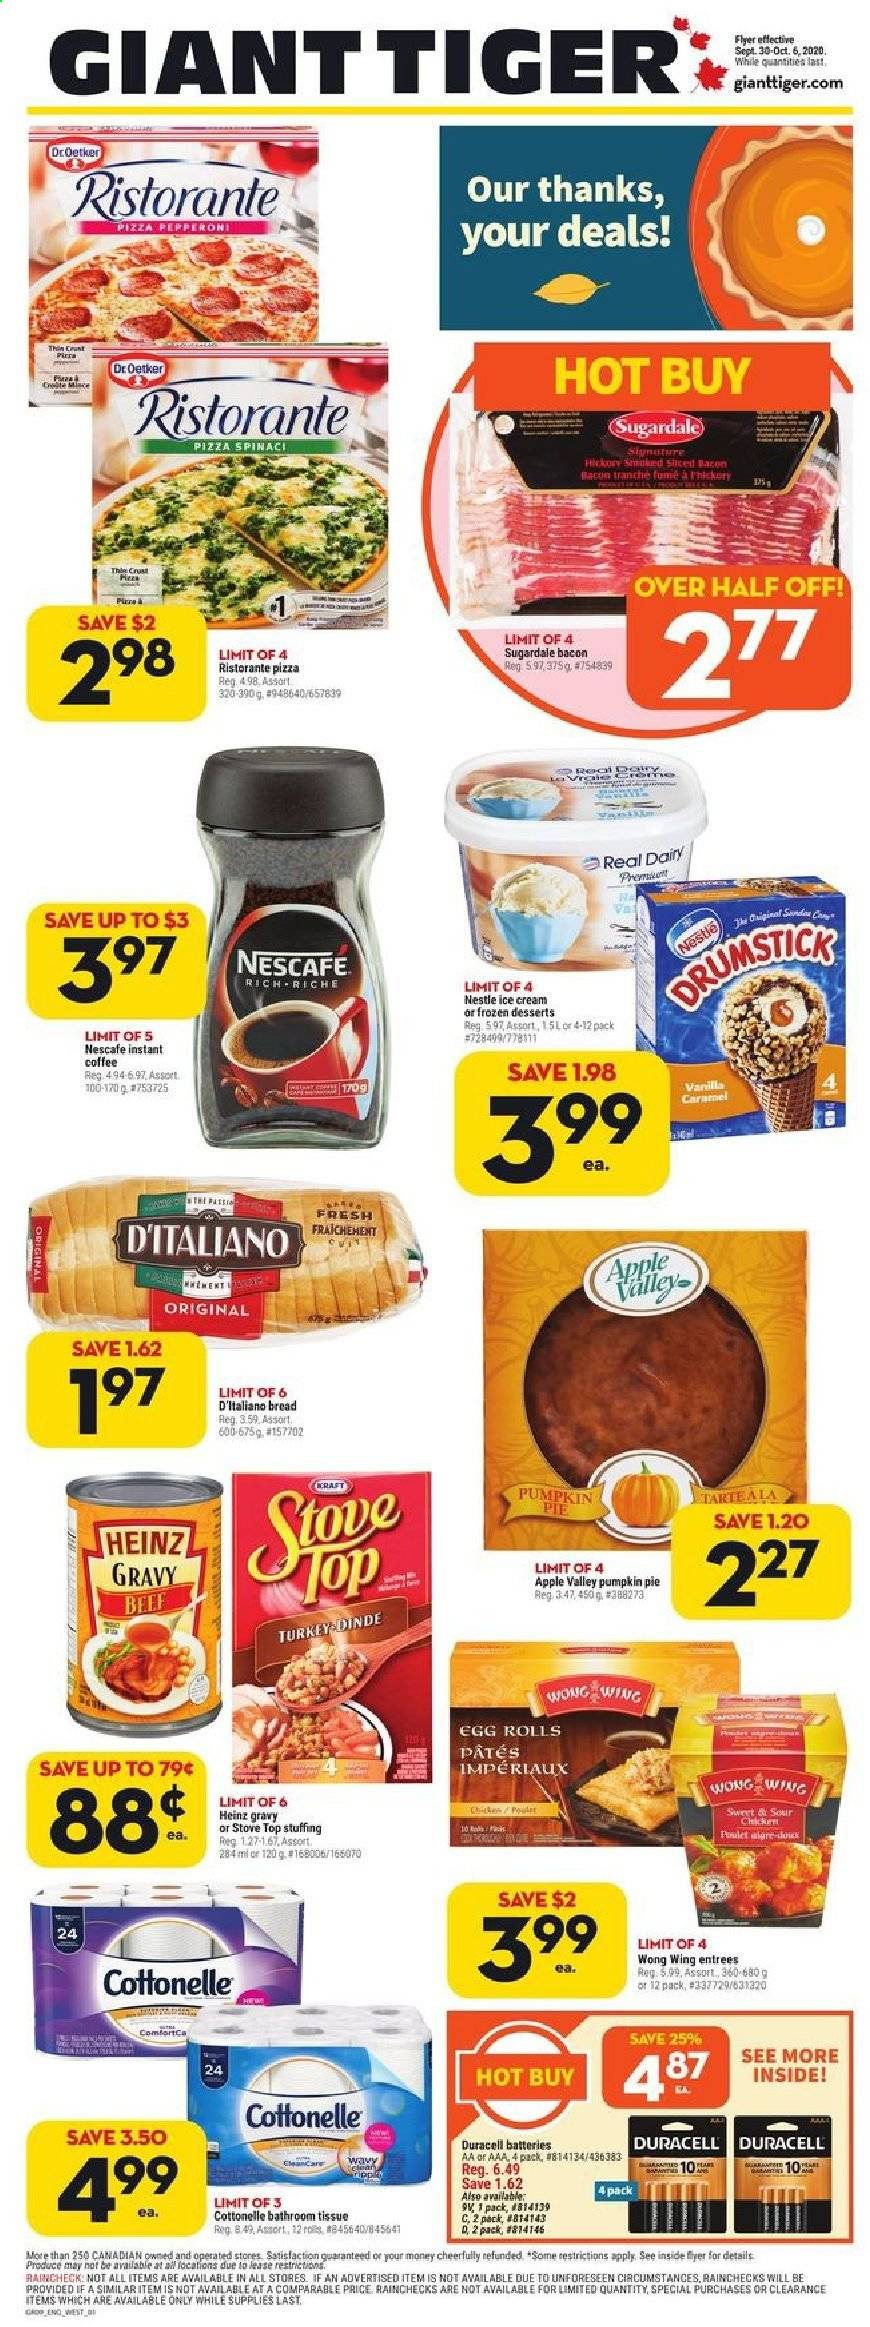 Giant Tiger Flyer - September 30, 2020 - October 06, 2020 - Sales products - apples, bacon, battery, beef meat, bread, caramel, cottonelle, duracell, eggs, frozen, nestlé, tiger, turkey, heinz, ice cream, instant coffee, pizza, pumpkin, chicken, pepperoni, pie, dinde, nescafé, pâtes, egg, aaa, craft, apple, stove, egg rolls, rolls. Page 1.